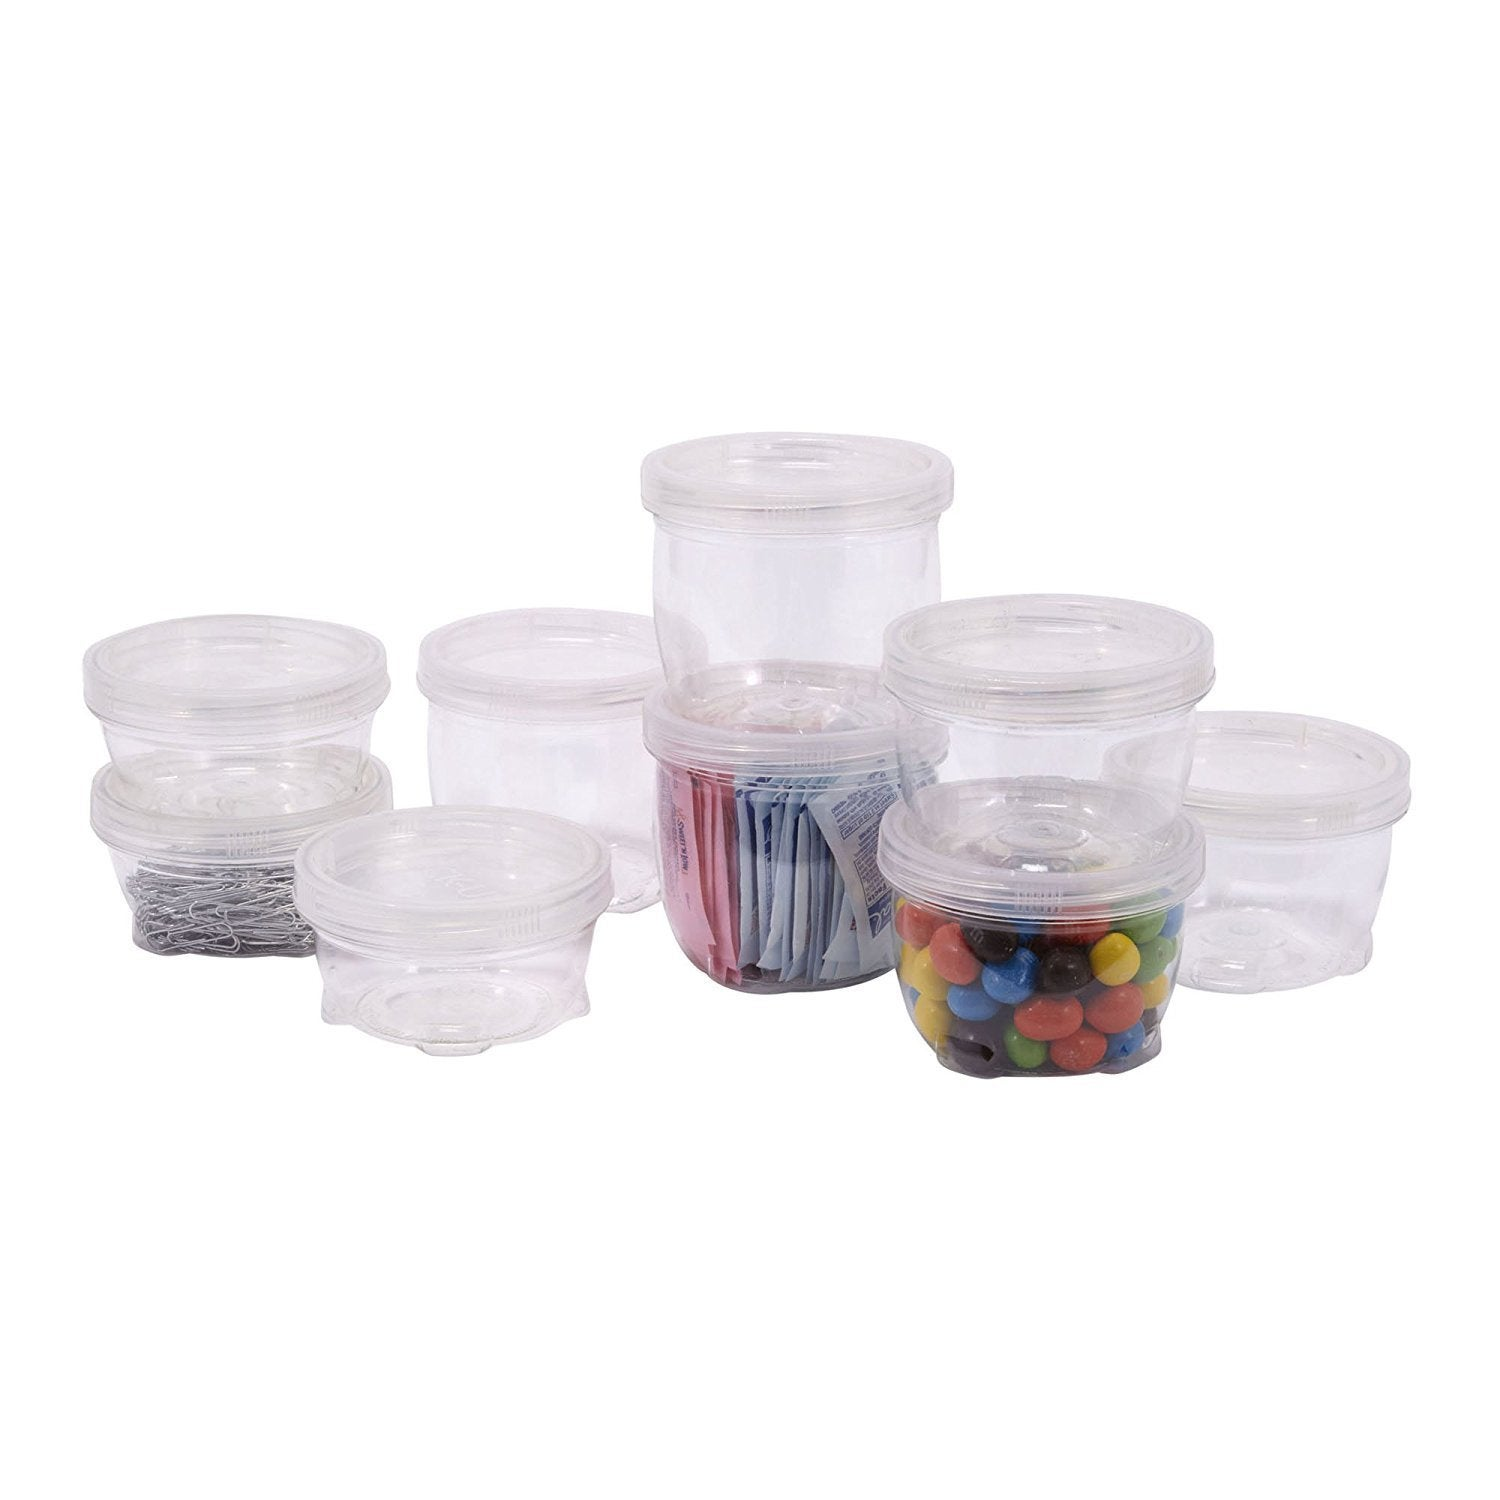 18 Piece Lock Up Storage Containers Multipack   Free Shipping On Orders  Over $45   Overstock   20694334